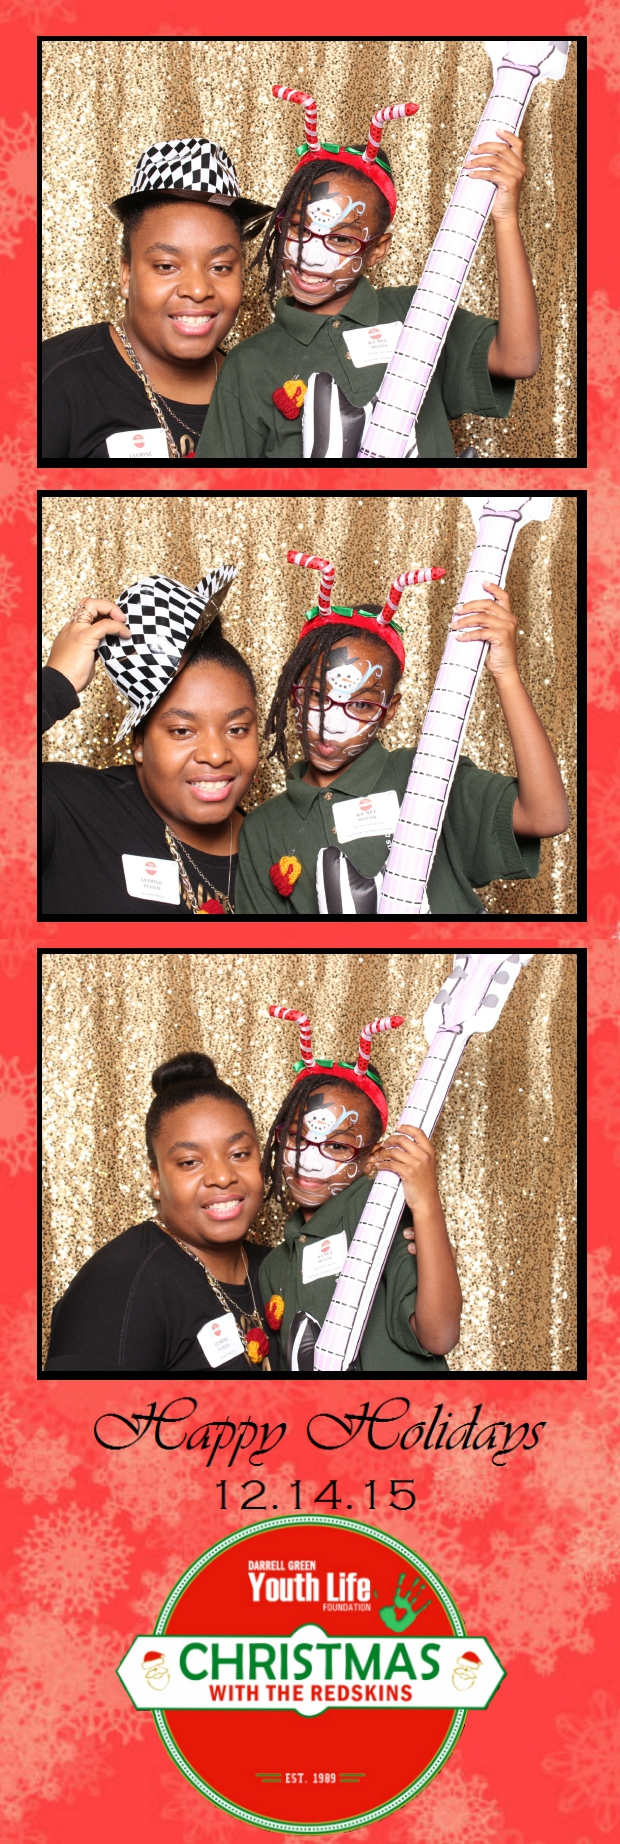 Guest House Events Photo Booth DGYLF Strips (61).jpg